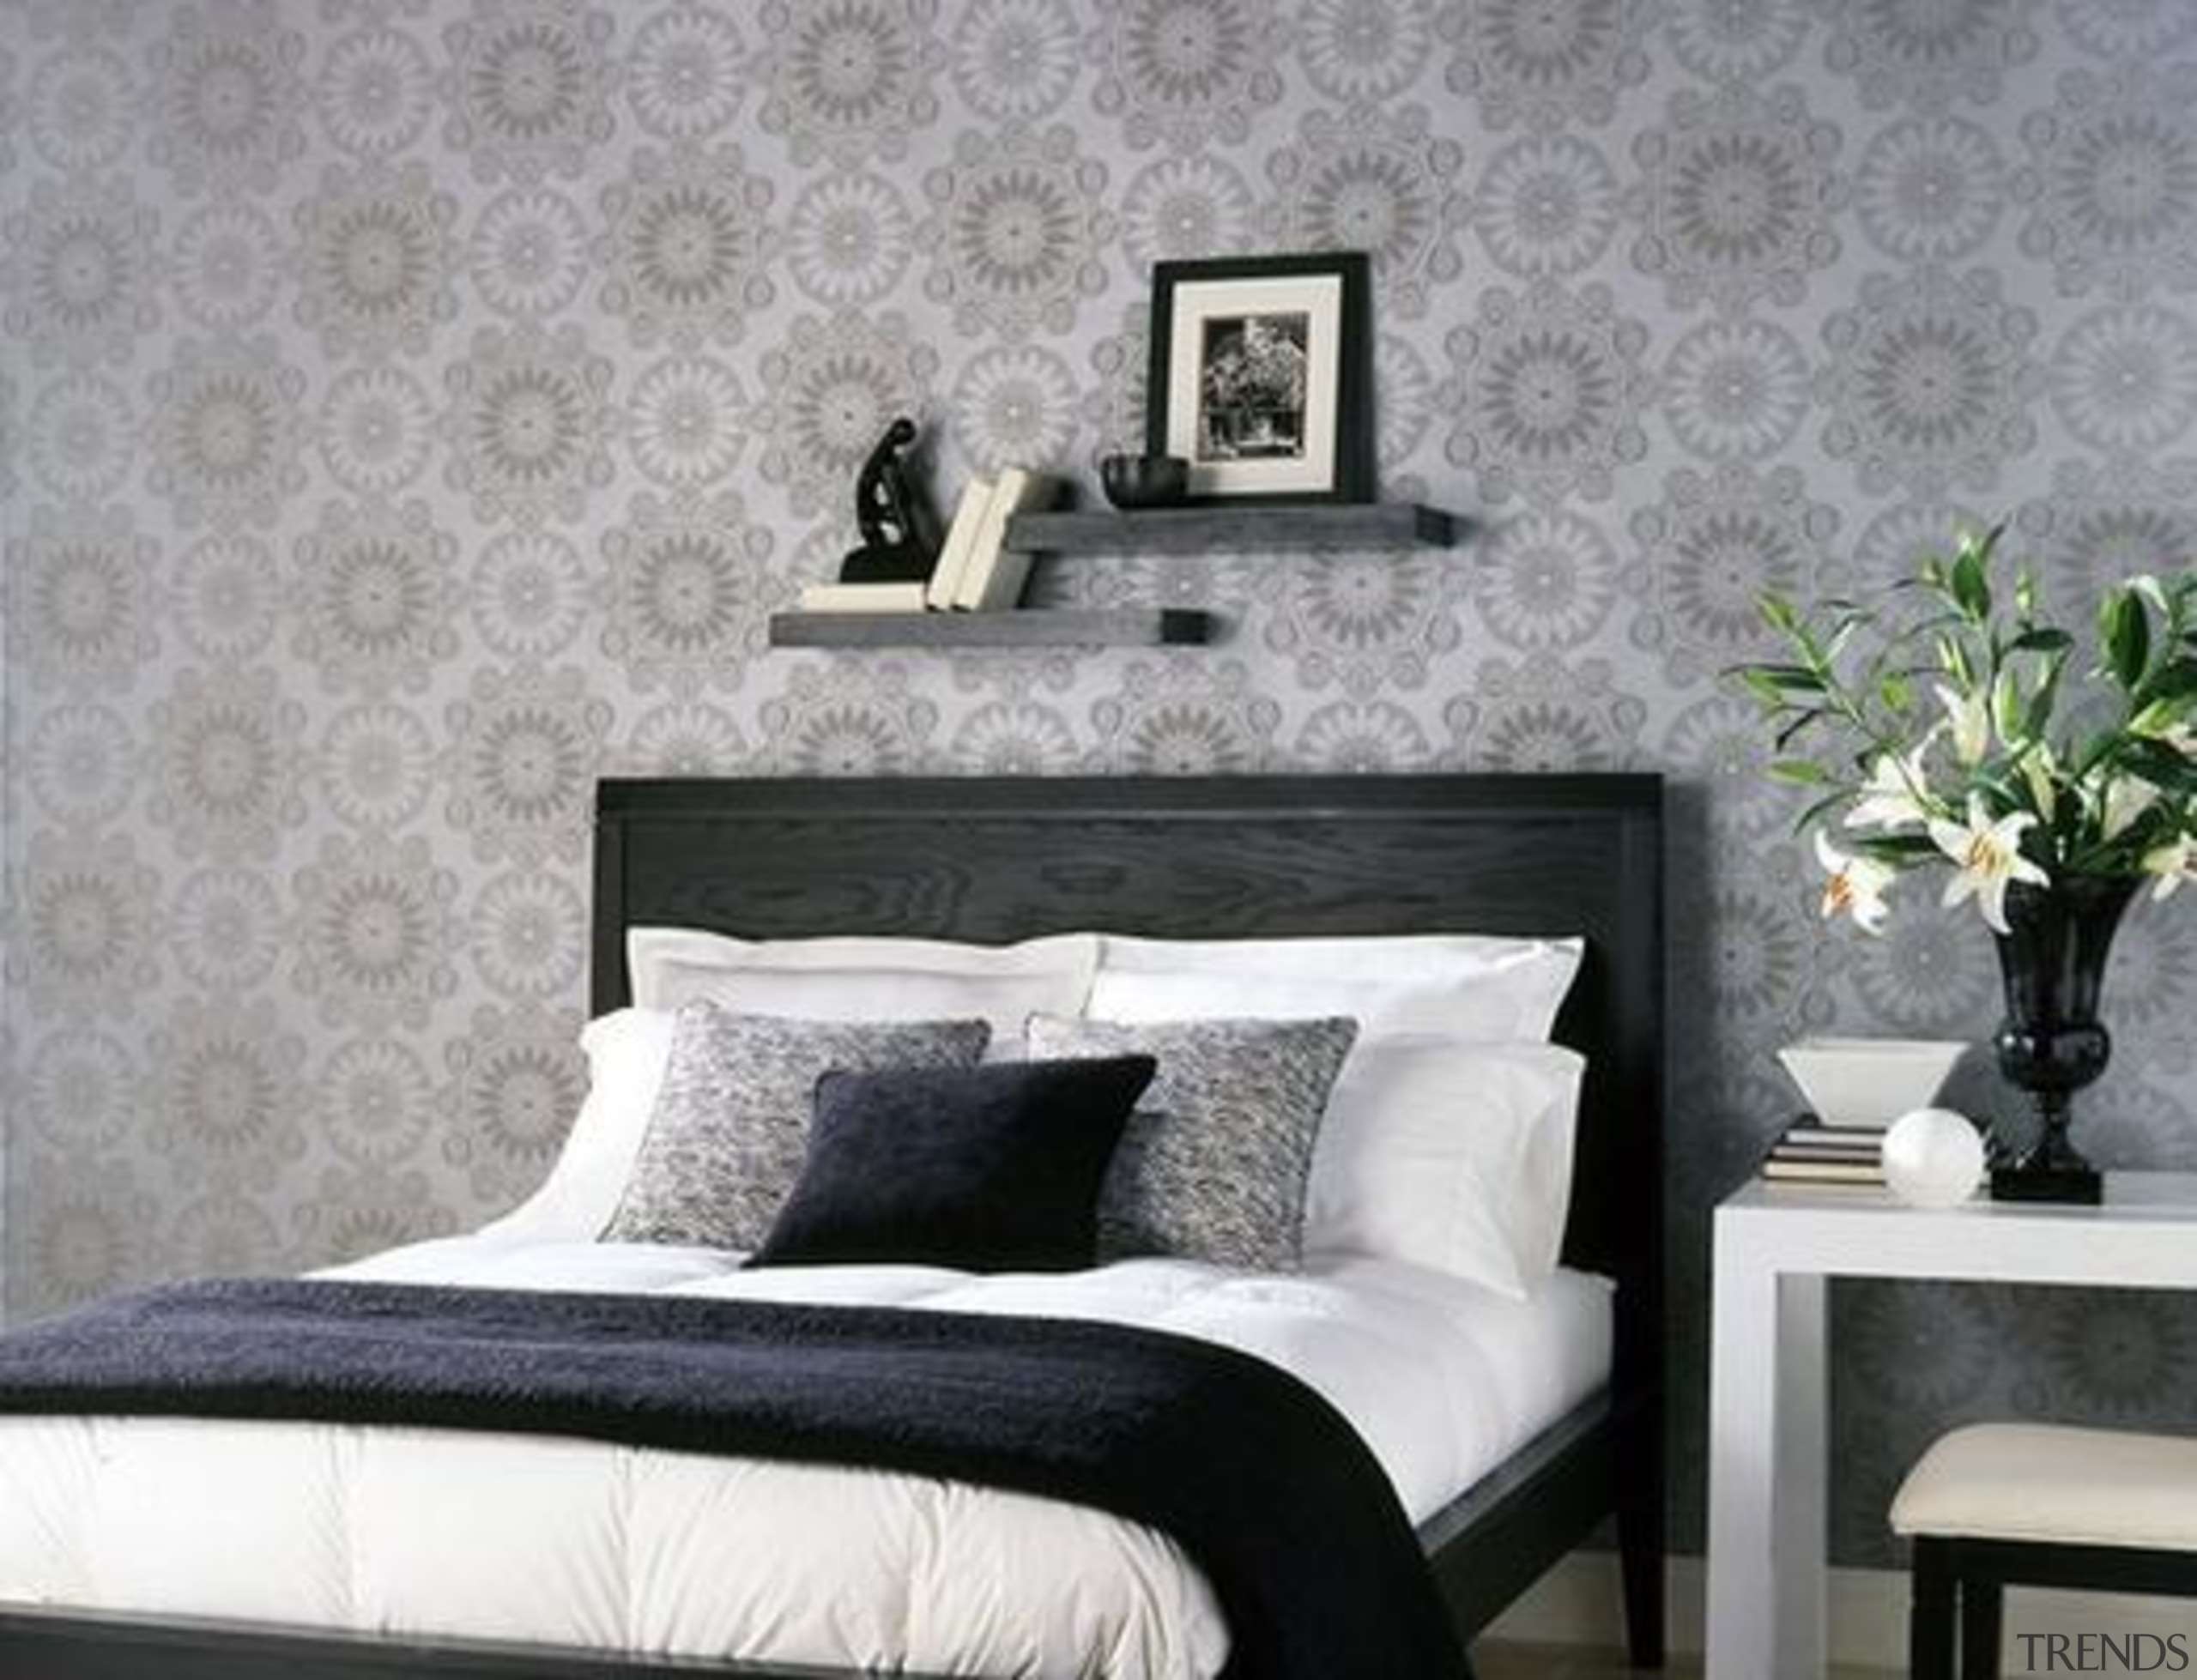 Classical Damask Style Keeping On Going - bed bed, bed frame, bedroom, couch, furniture, home, interior design, living room, room, wall, wallpaper, gray